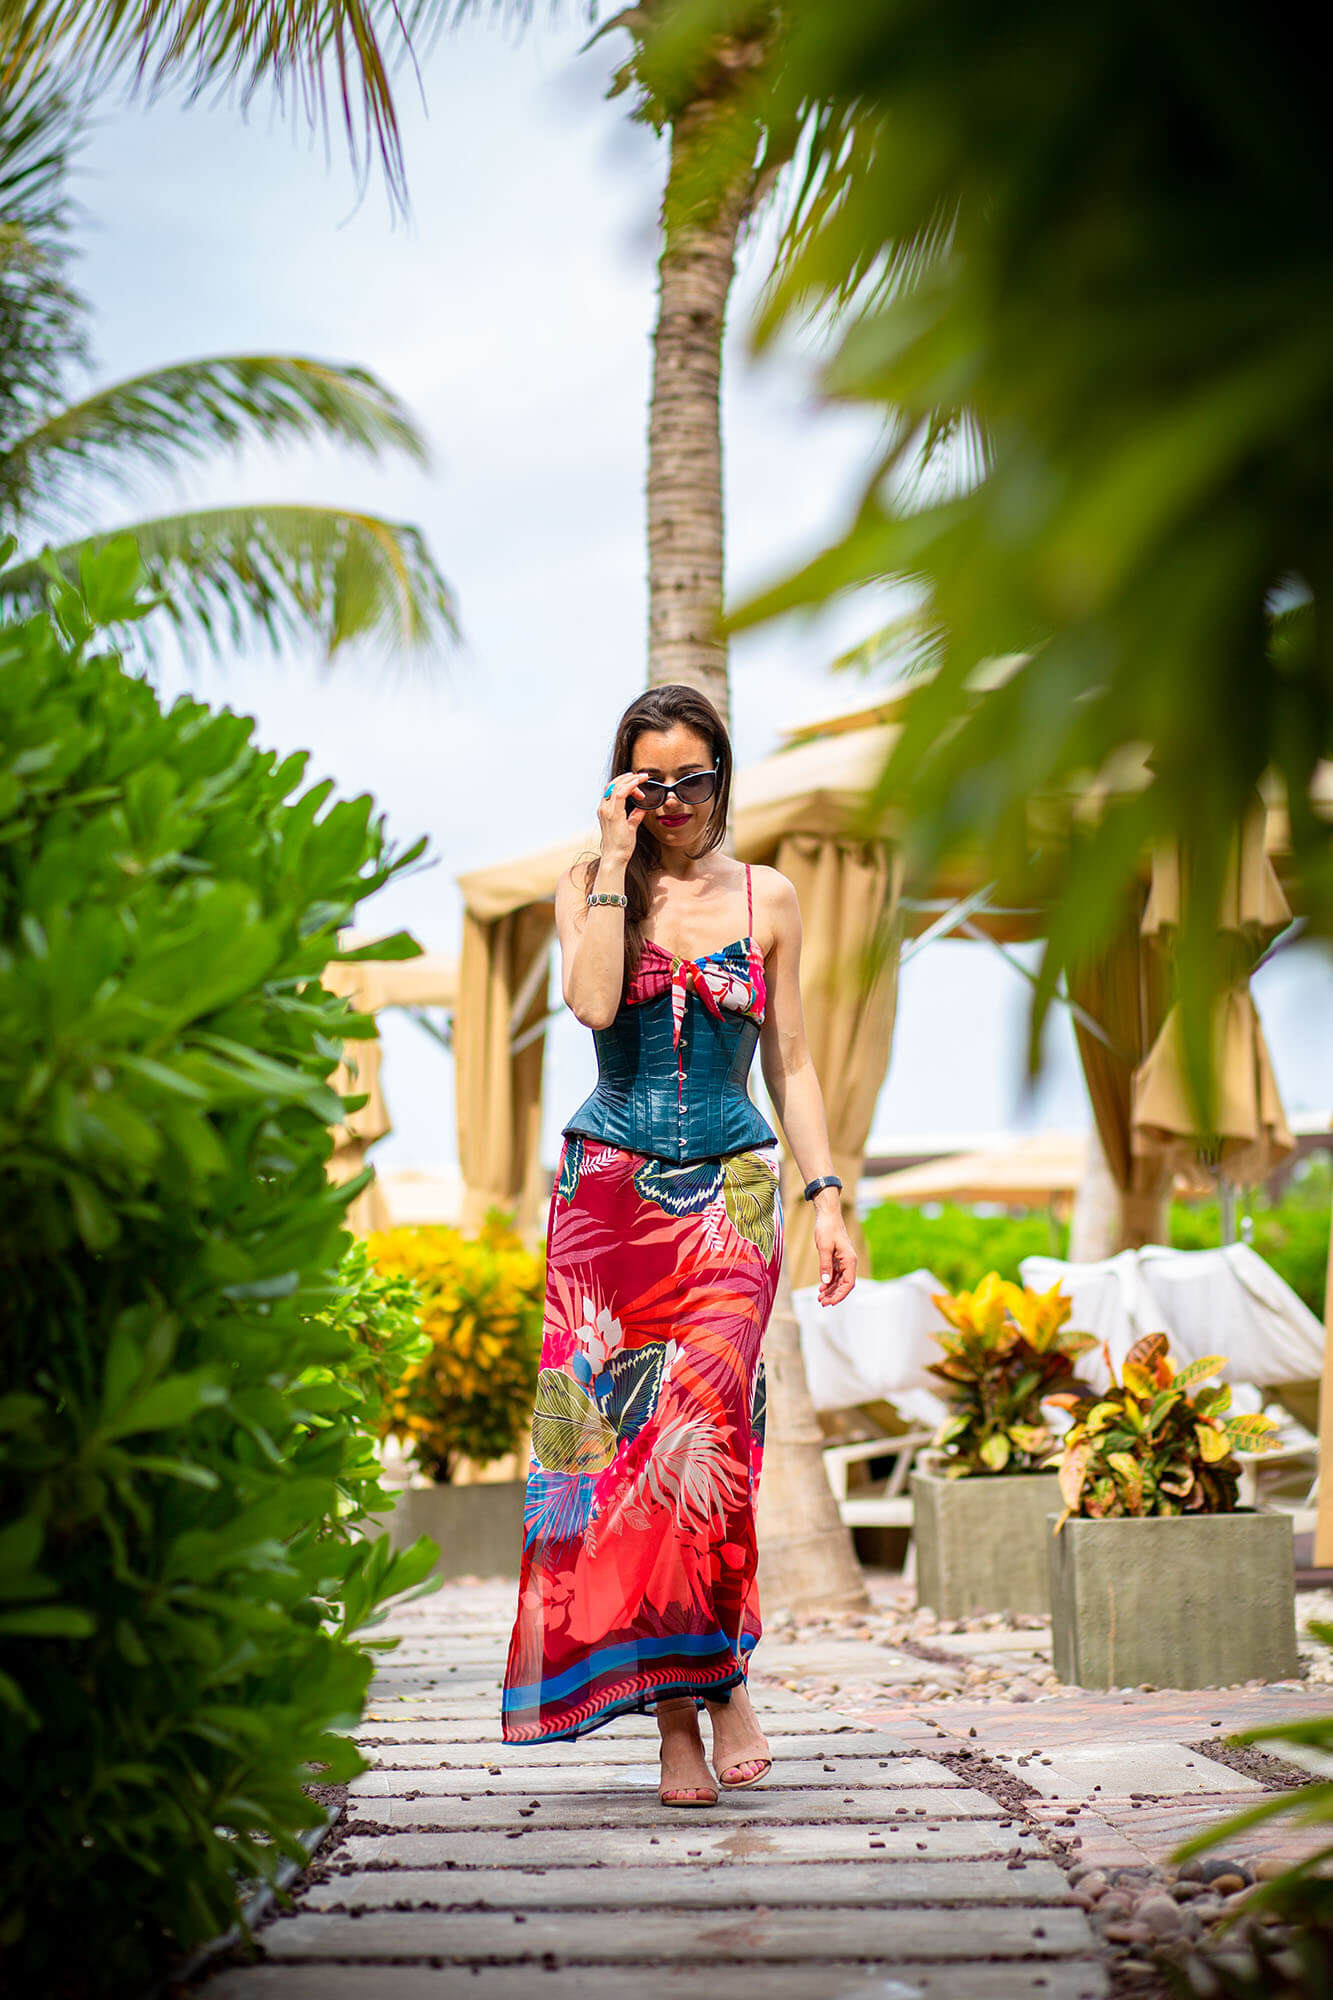 Stella in Teal Corset and Red Tropical Dress at the Beach